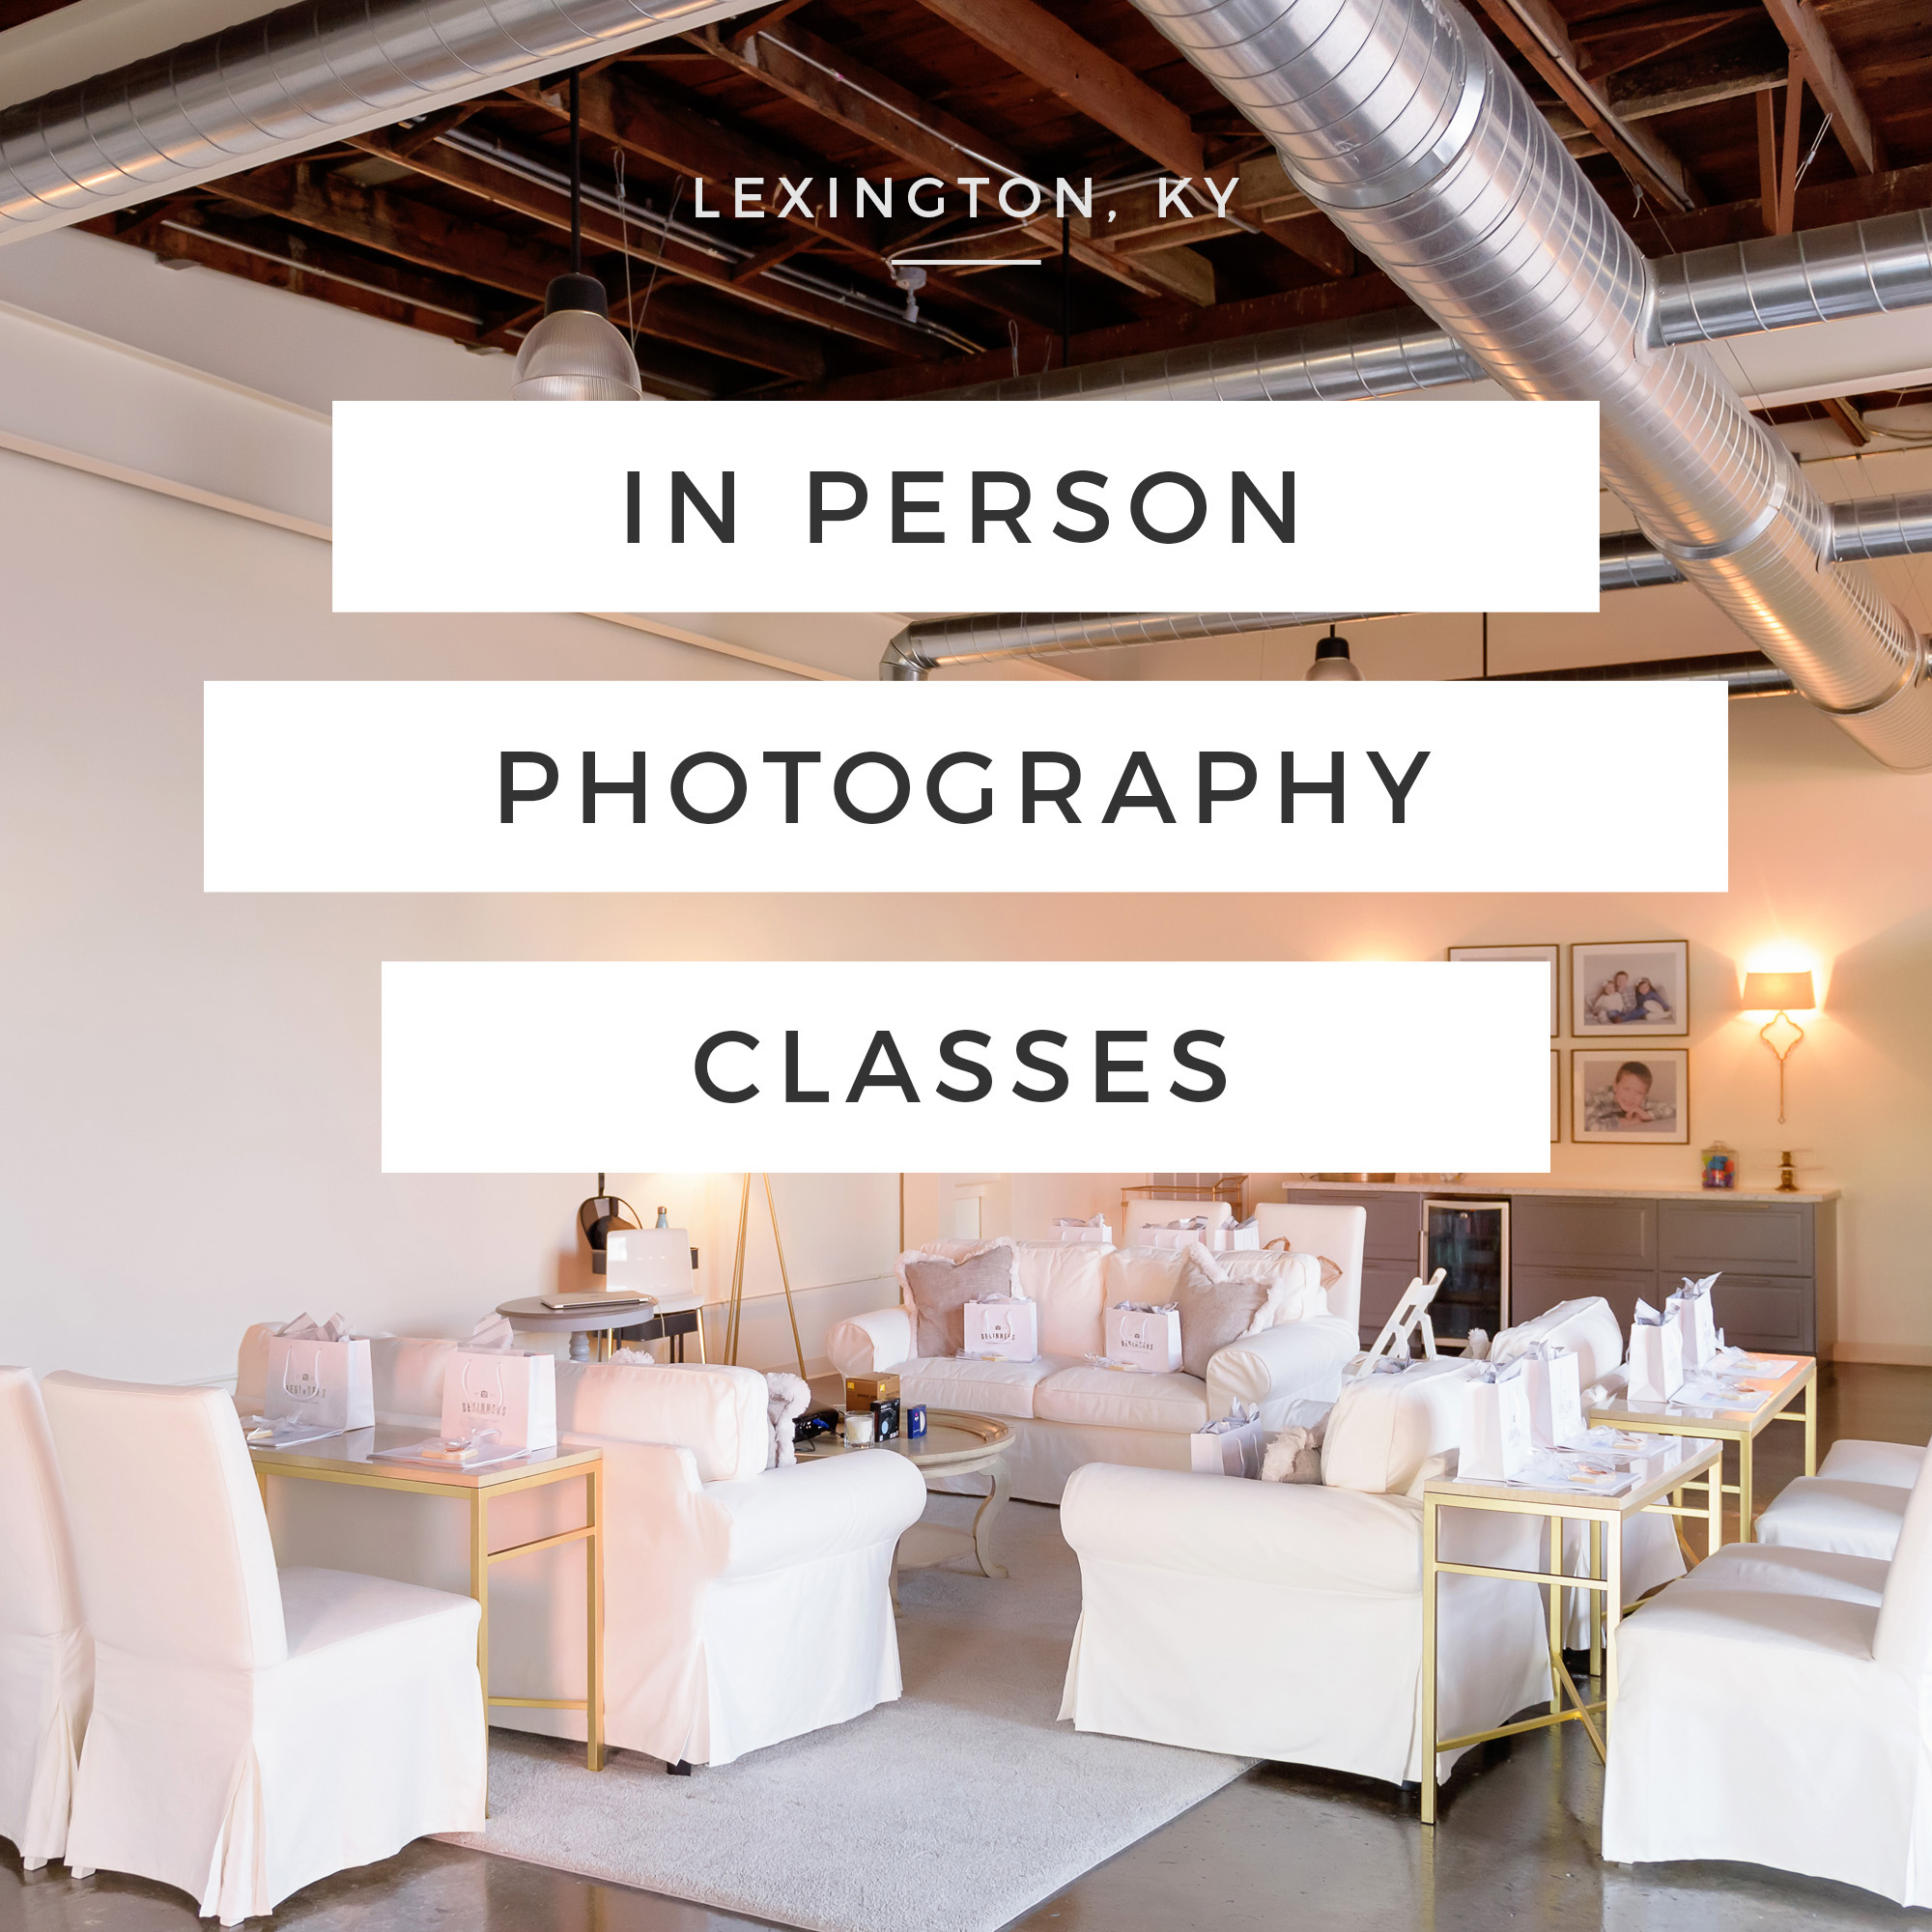 lexington photography classes